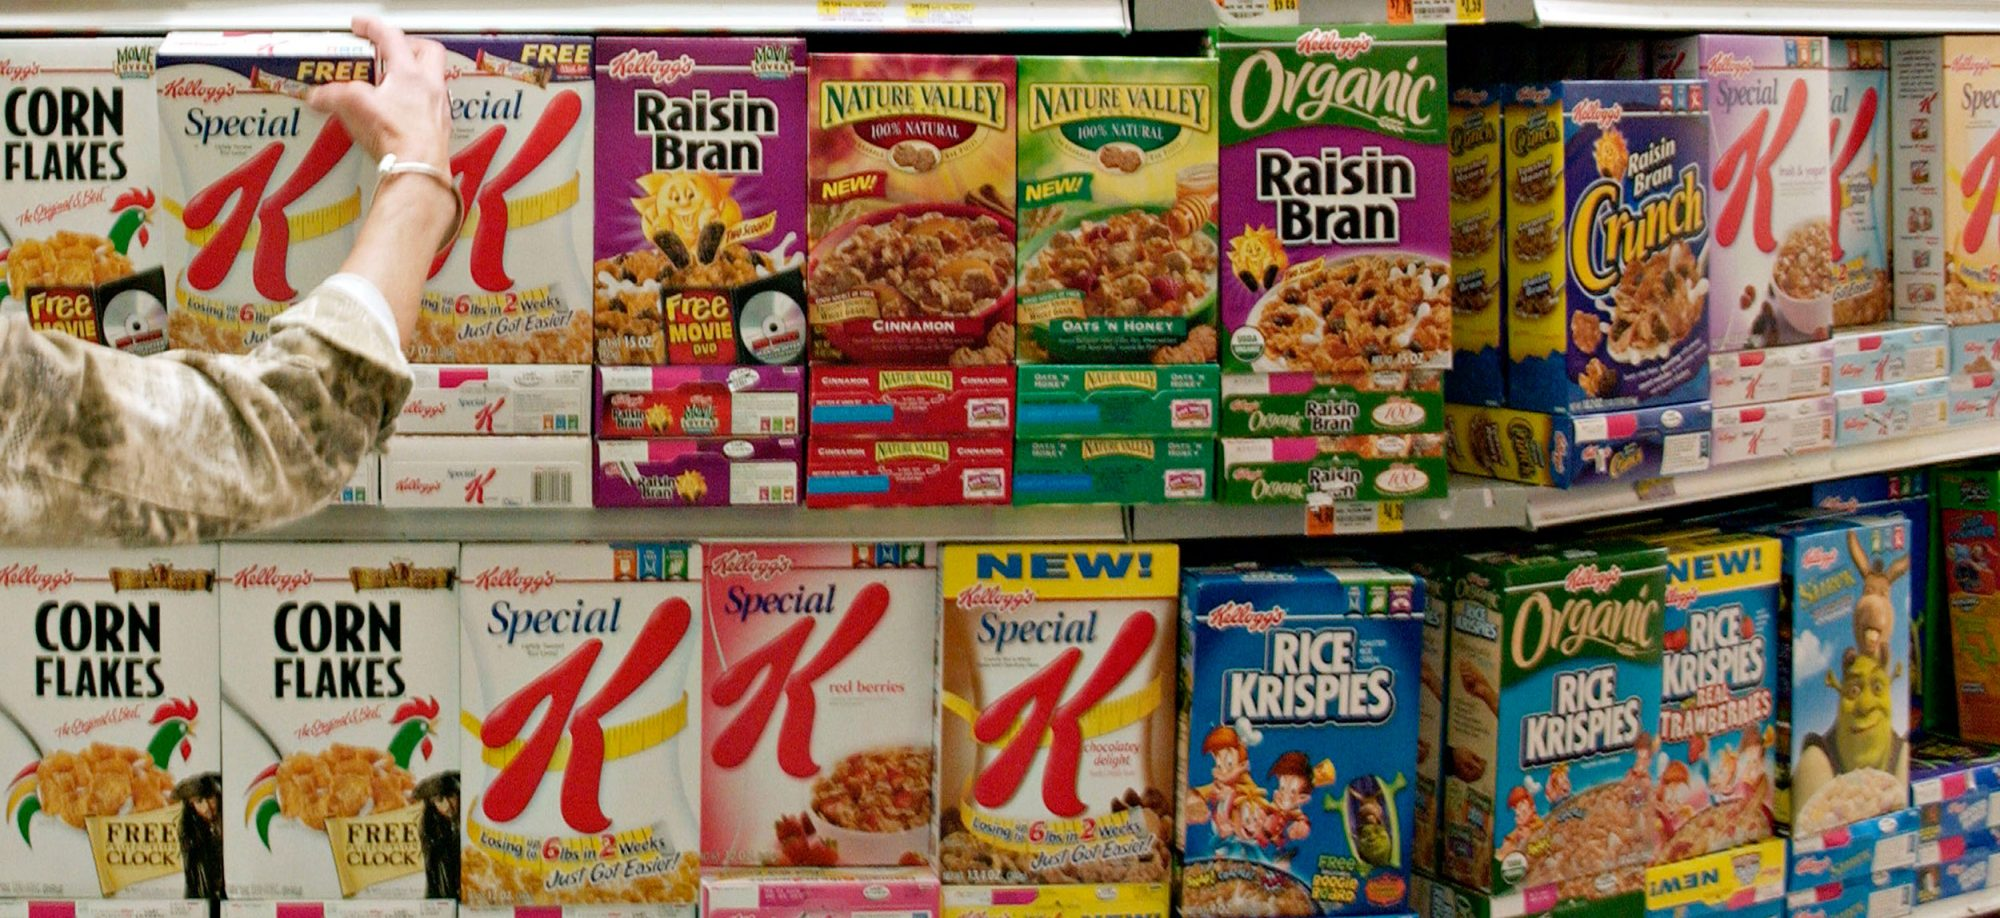 EC: When 'Healthy Eating Tips' on Cereal Boxes Are Just Body-Shaming in Disguise